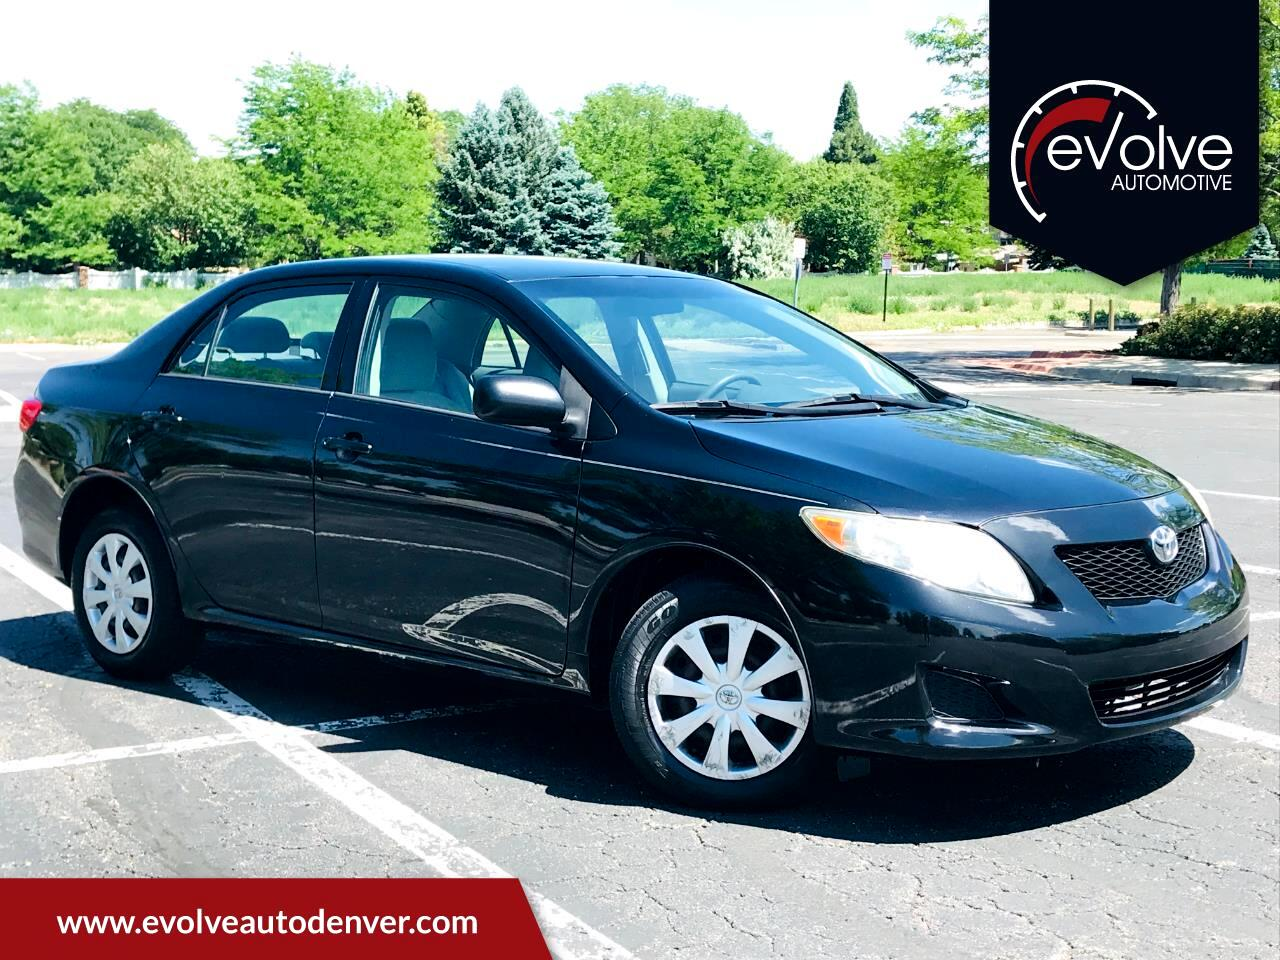 2009 Toyota Corolla S 5-Speed MT